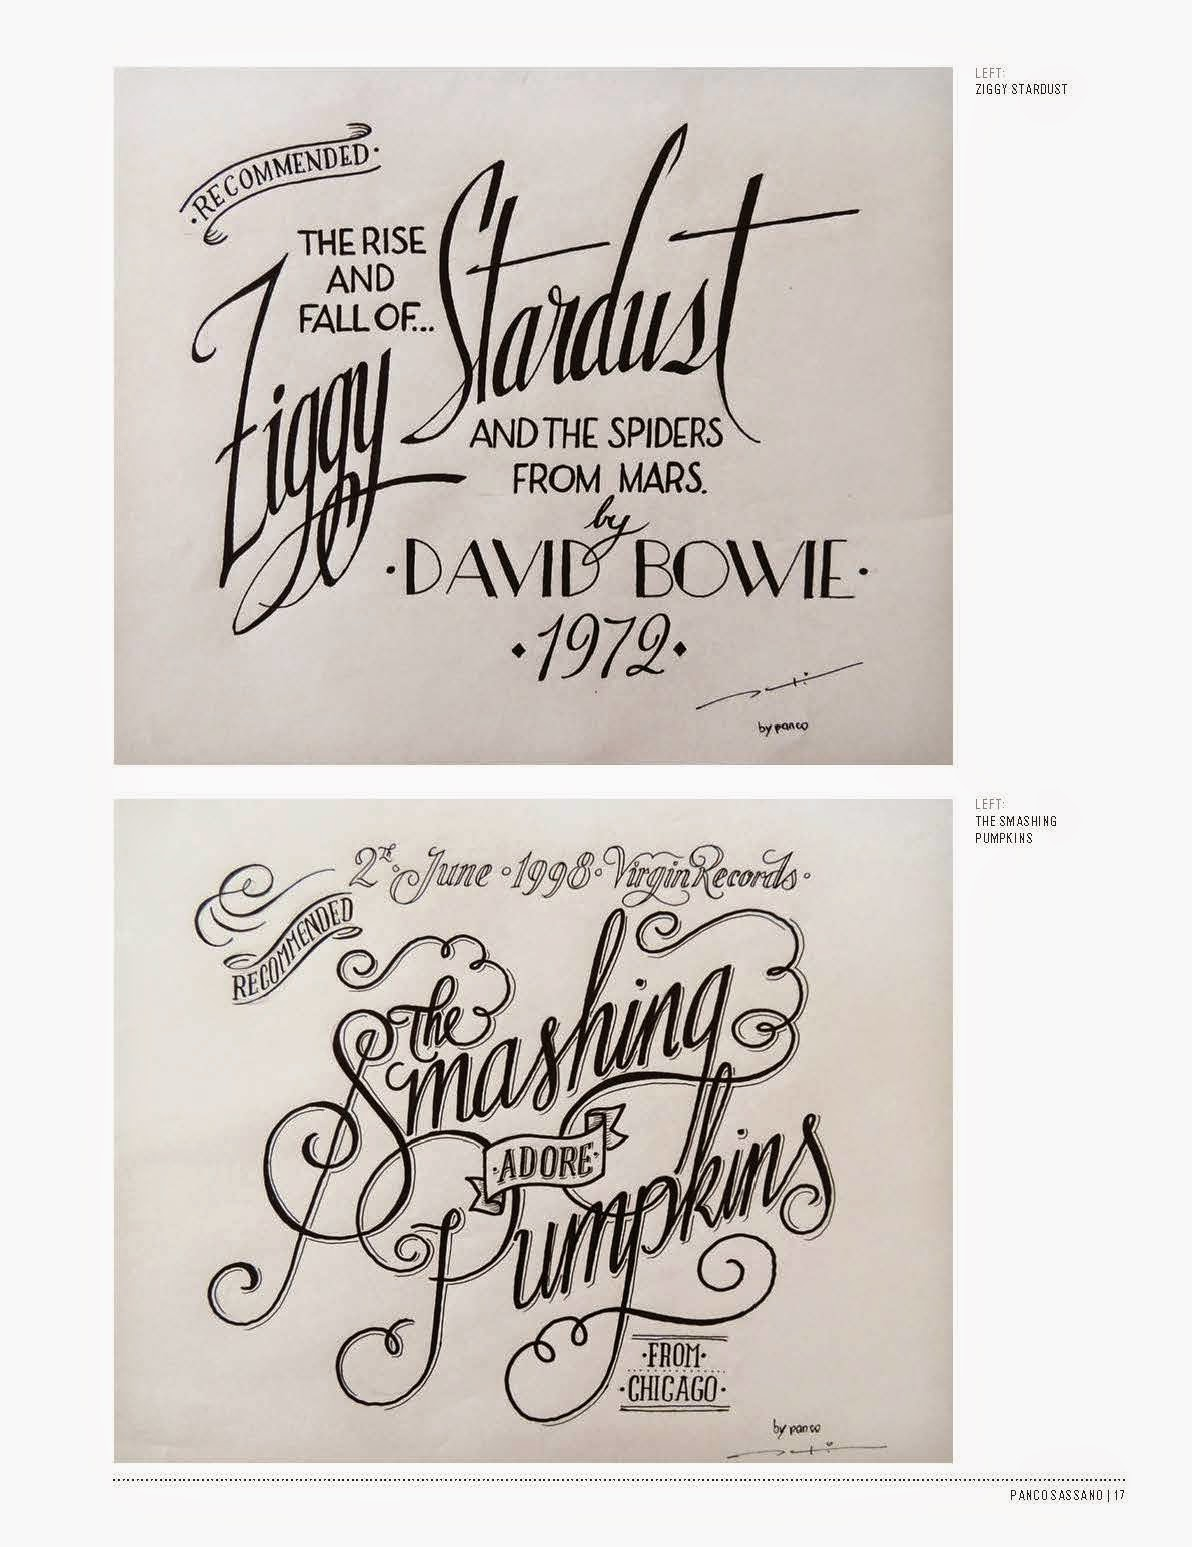 Ziggy Stardust And The Smashing Pumpkins Hand Drawn Type By Panco Sassno Featured In Drawing